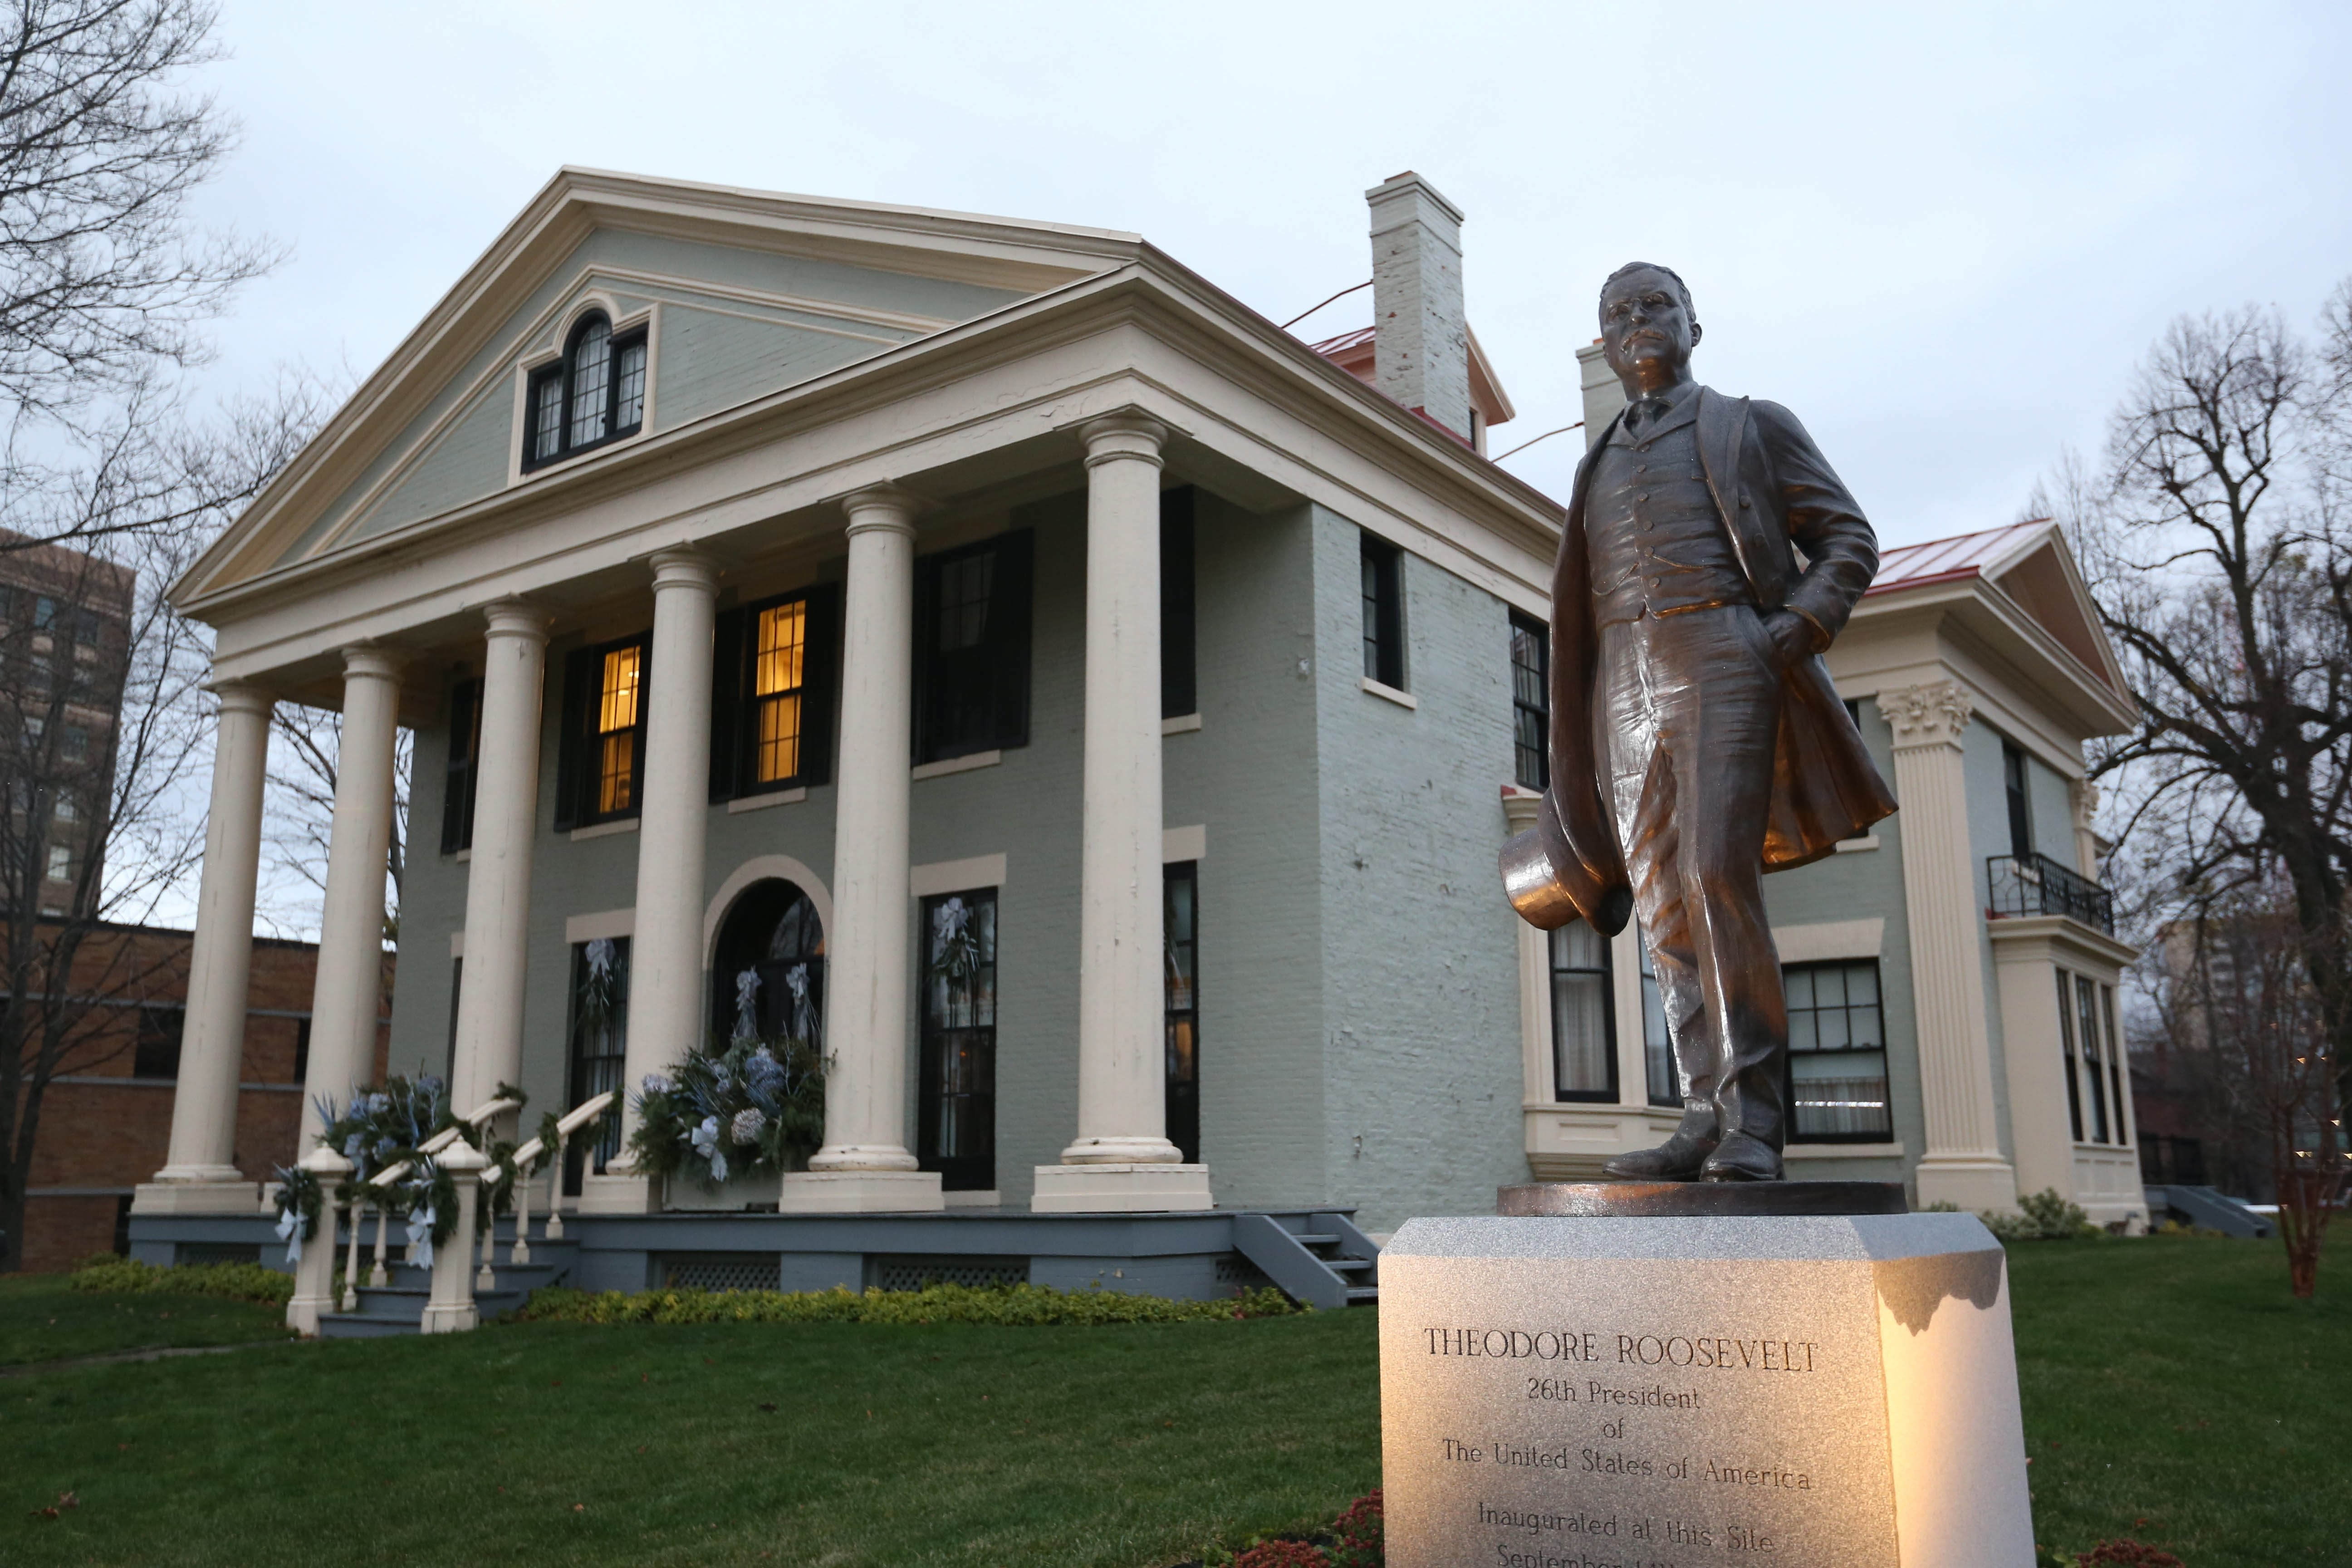 Decked out for the holidays: The Theodore Roosevelt Inaugural National Historic Site has a dramatic story to tell of how Theodore Roosevelt was inaugurated here after President McKinley was assassinated. Each year, area garden clubs give the house the holiday treatment.